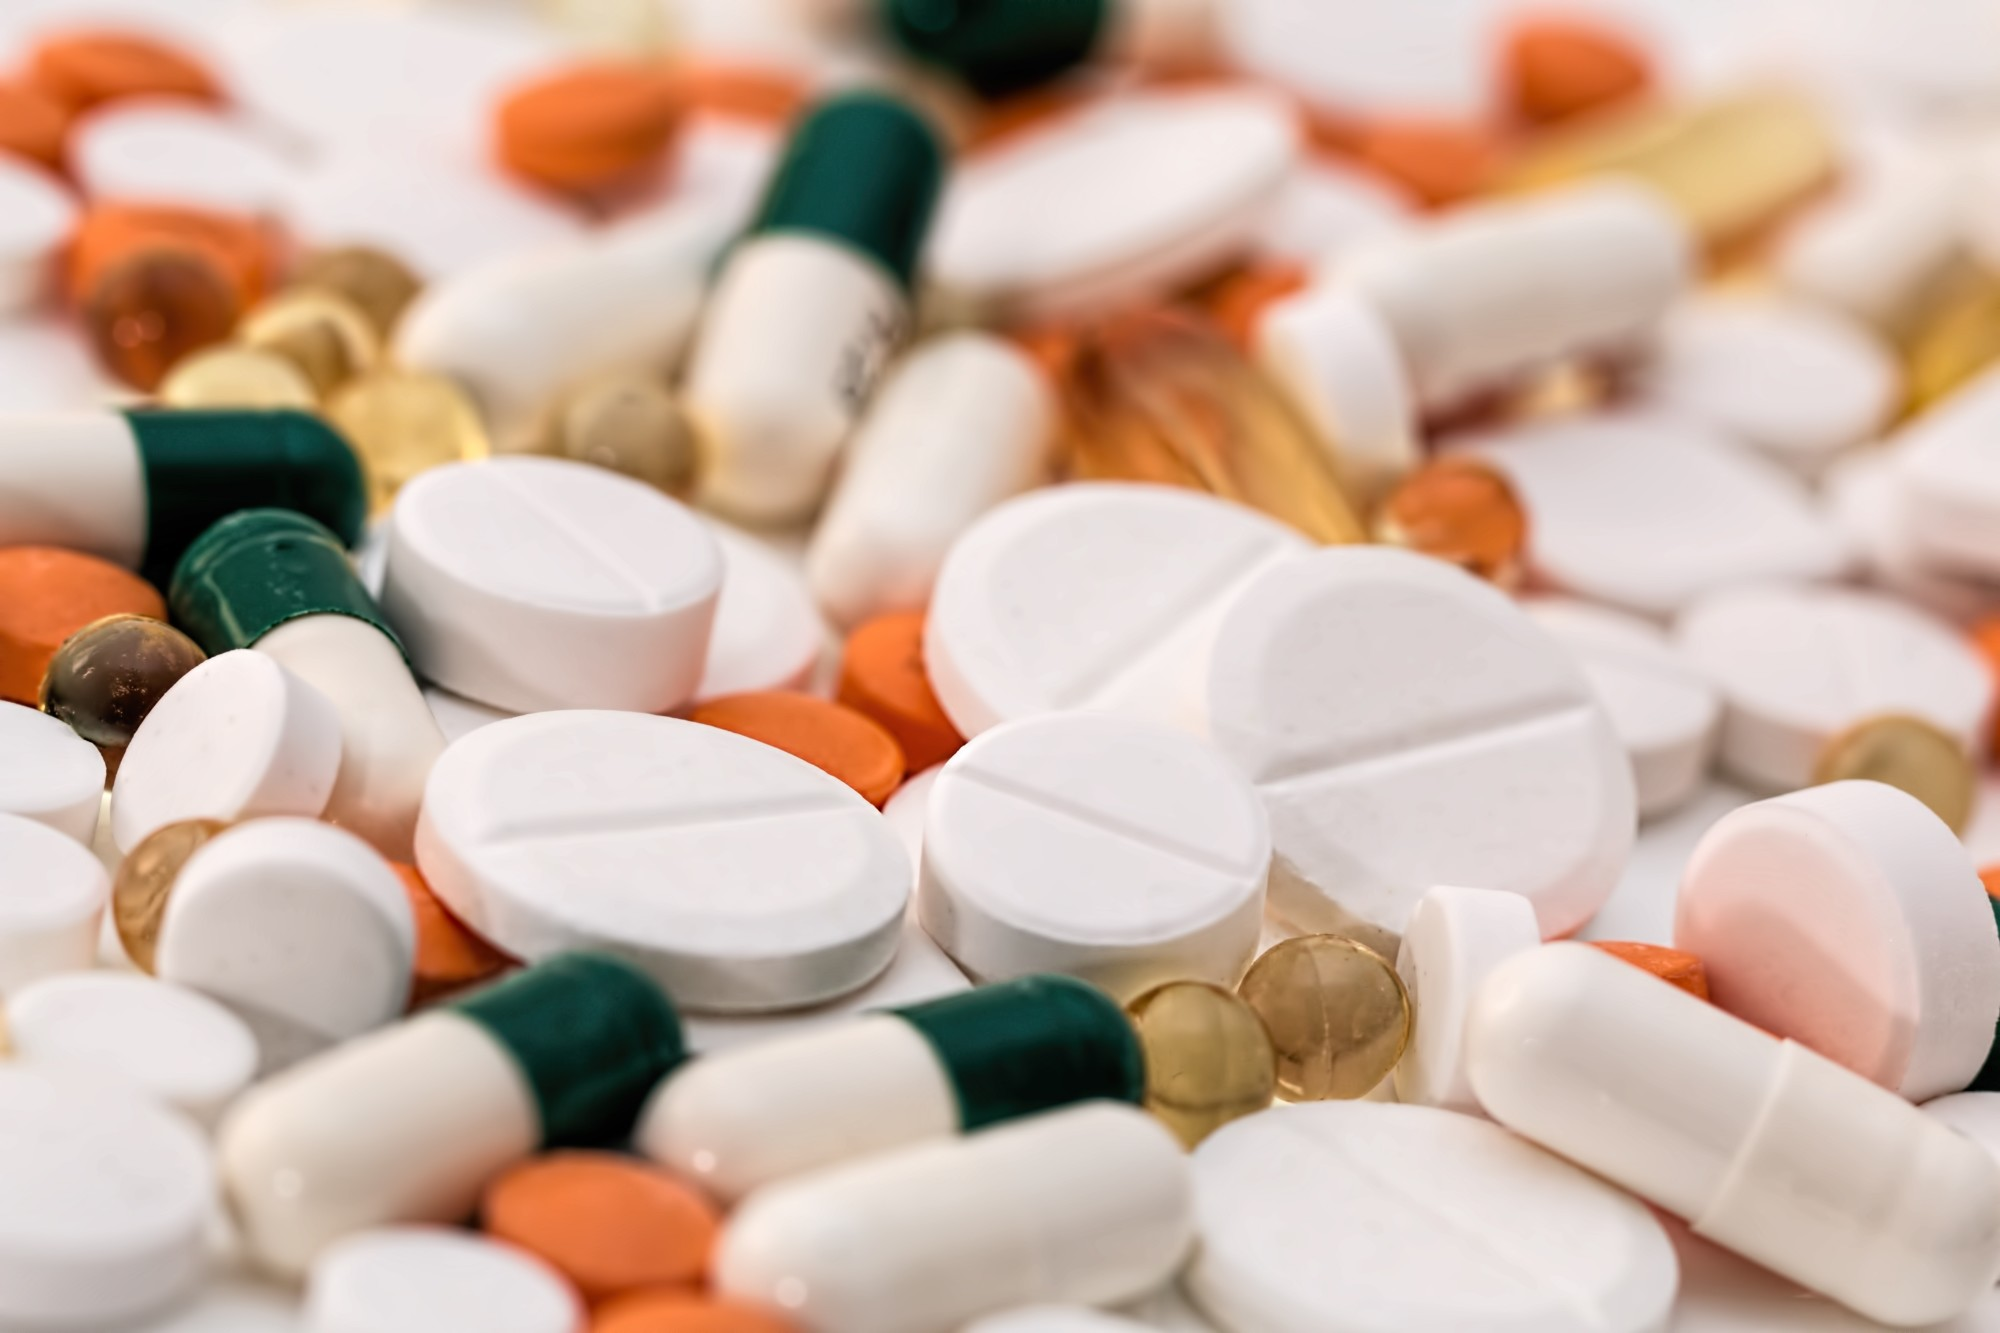 A variety of pills of different colours all together on a table, indicating that many prescription medications can be bought online, making getting your pills easier than every before.